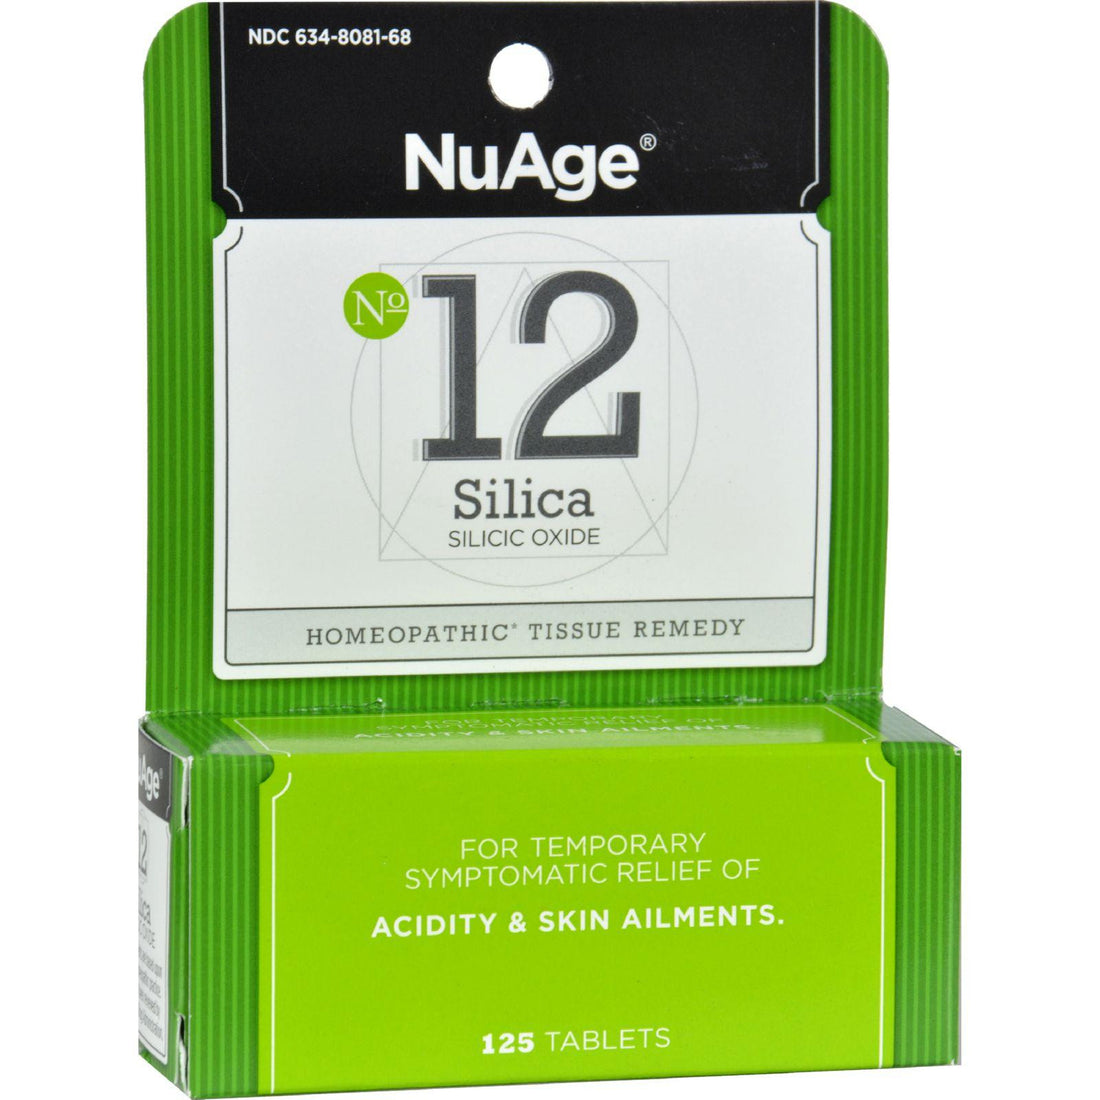 Mother Mantis: Hyland's Nuage No. 12 Silica - 125 Tablets Hyland's